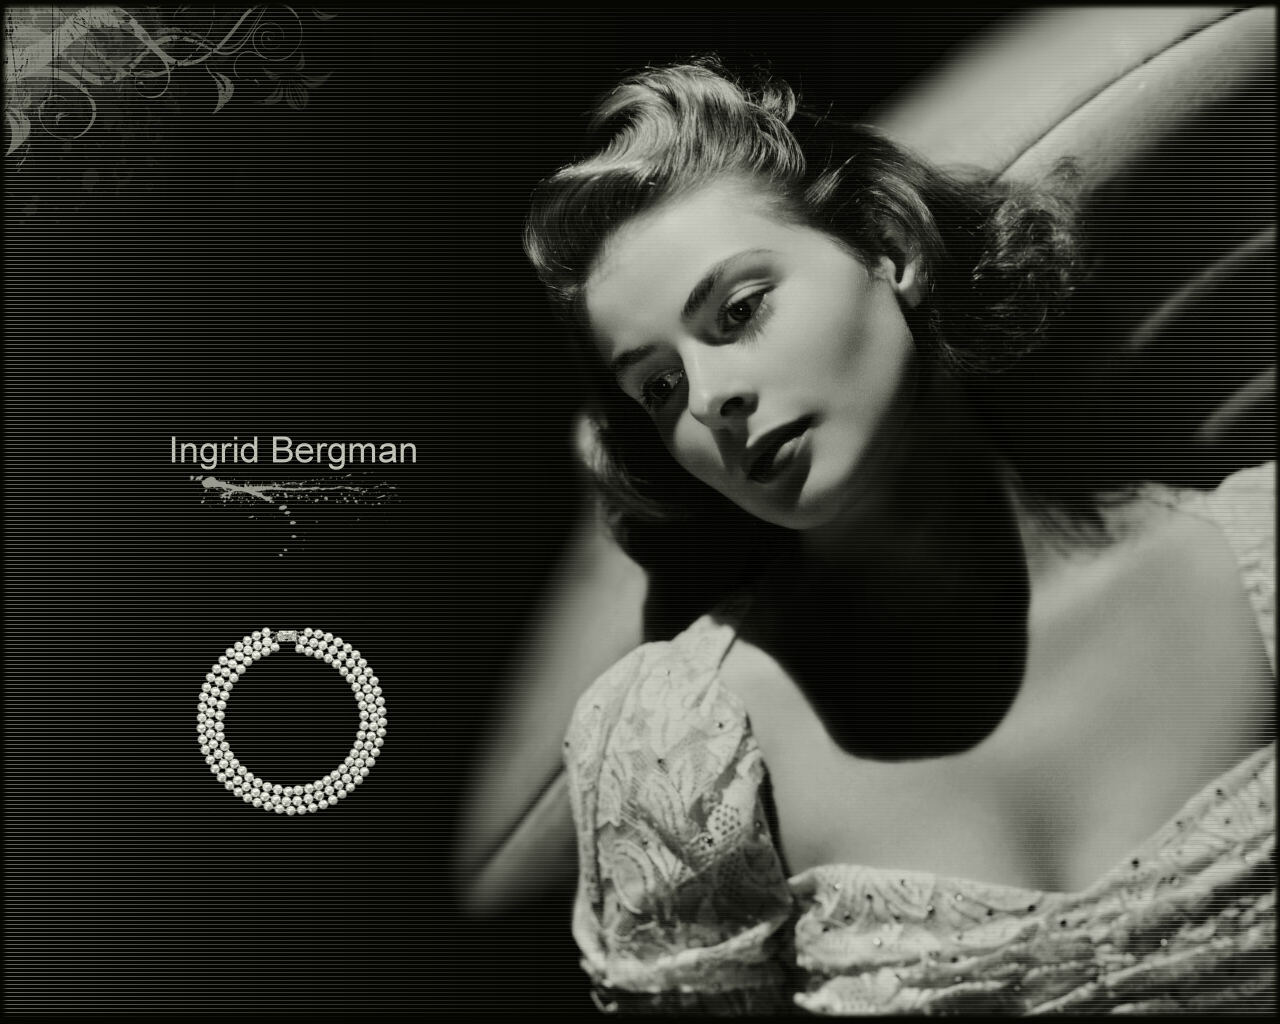 Ingrid Bergman Photo studio Pinterest 1280x1024